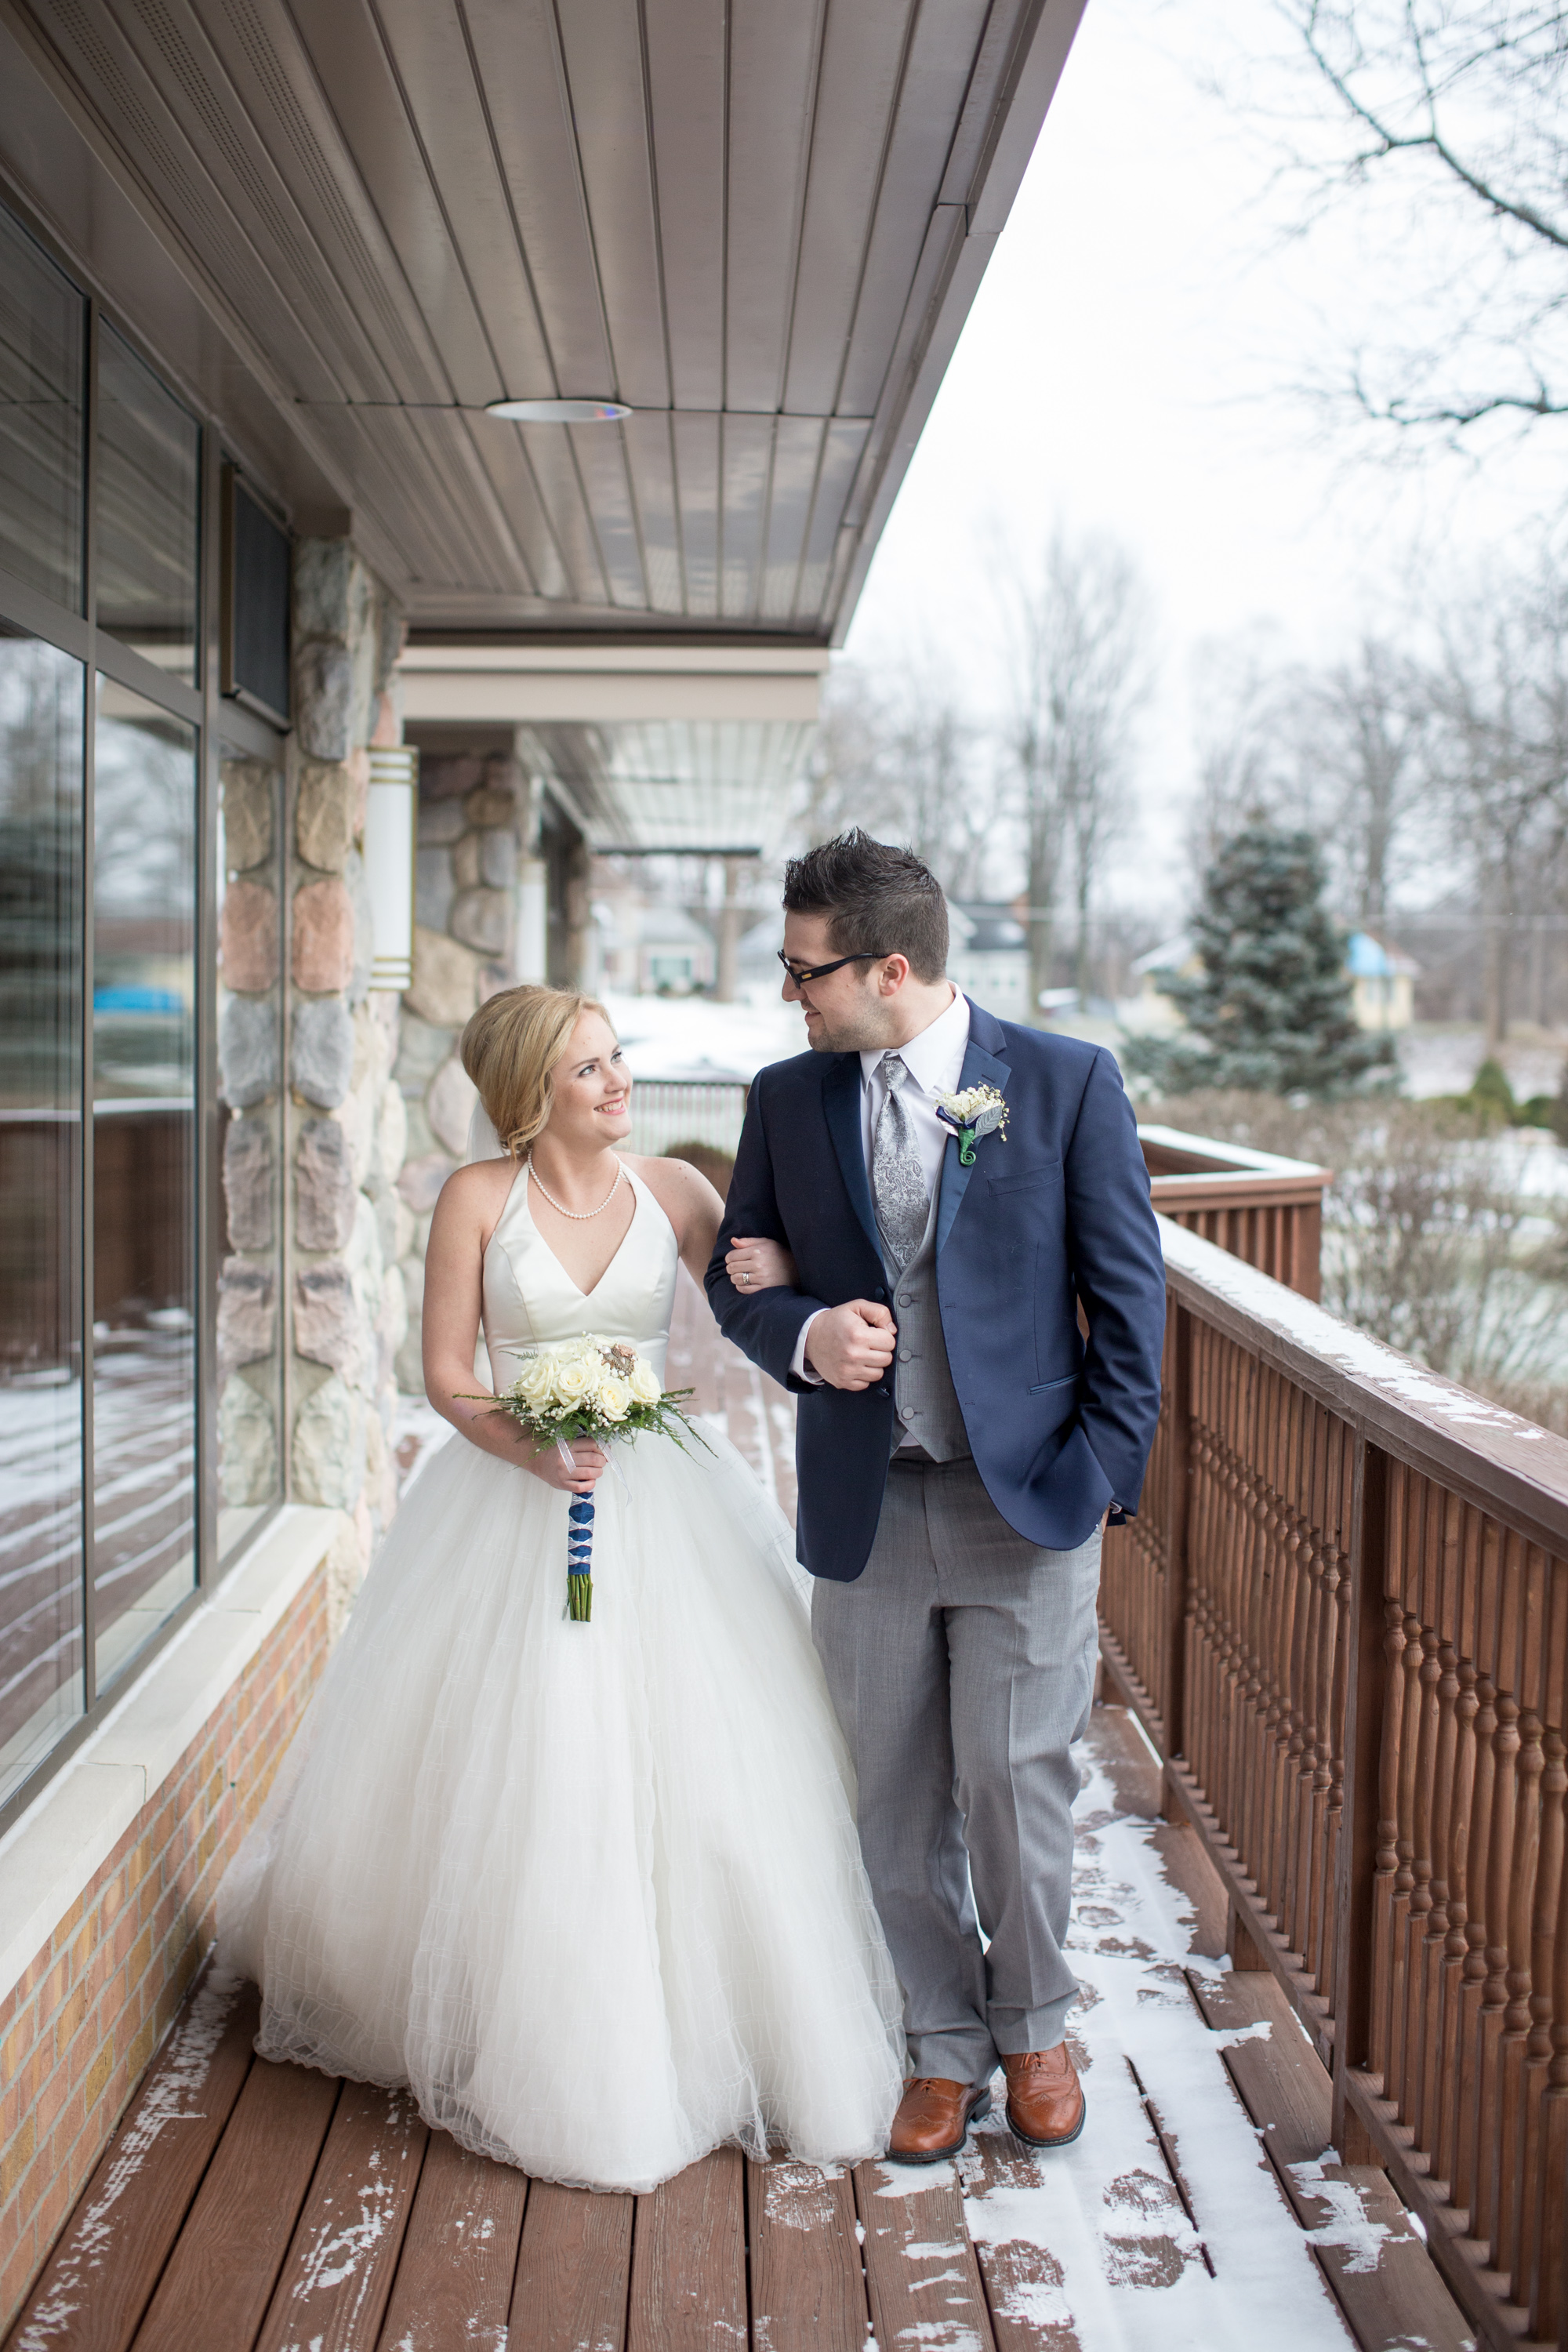 Bride and groom in the winter posing for wedding photos